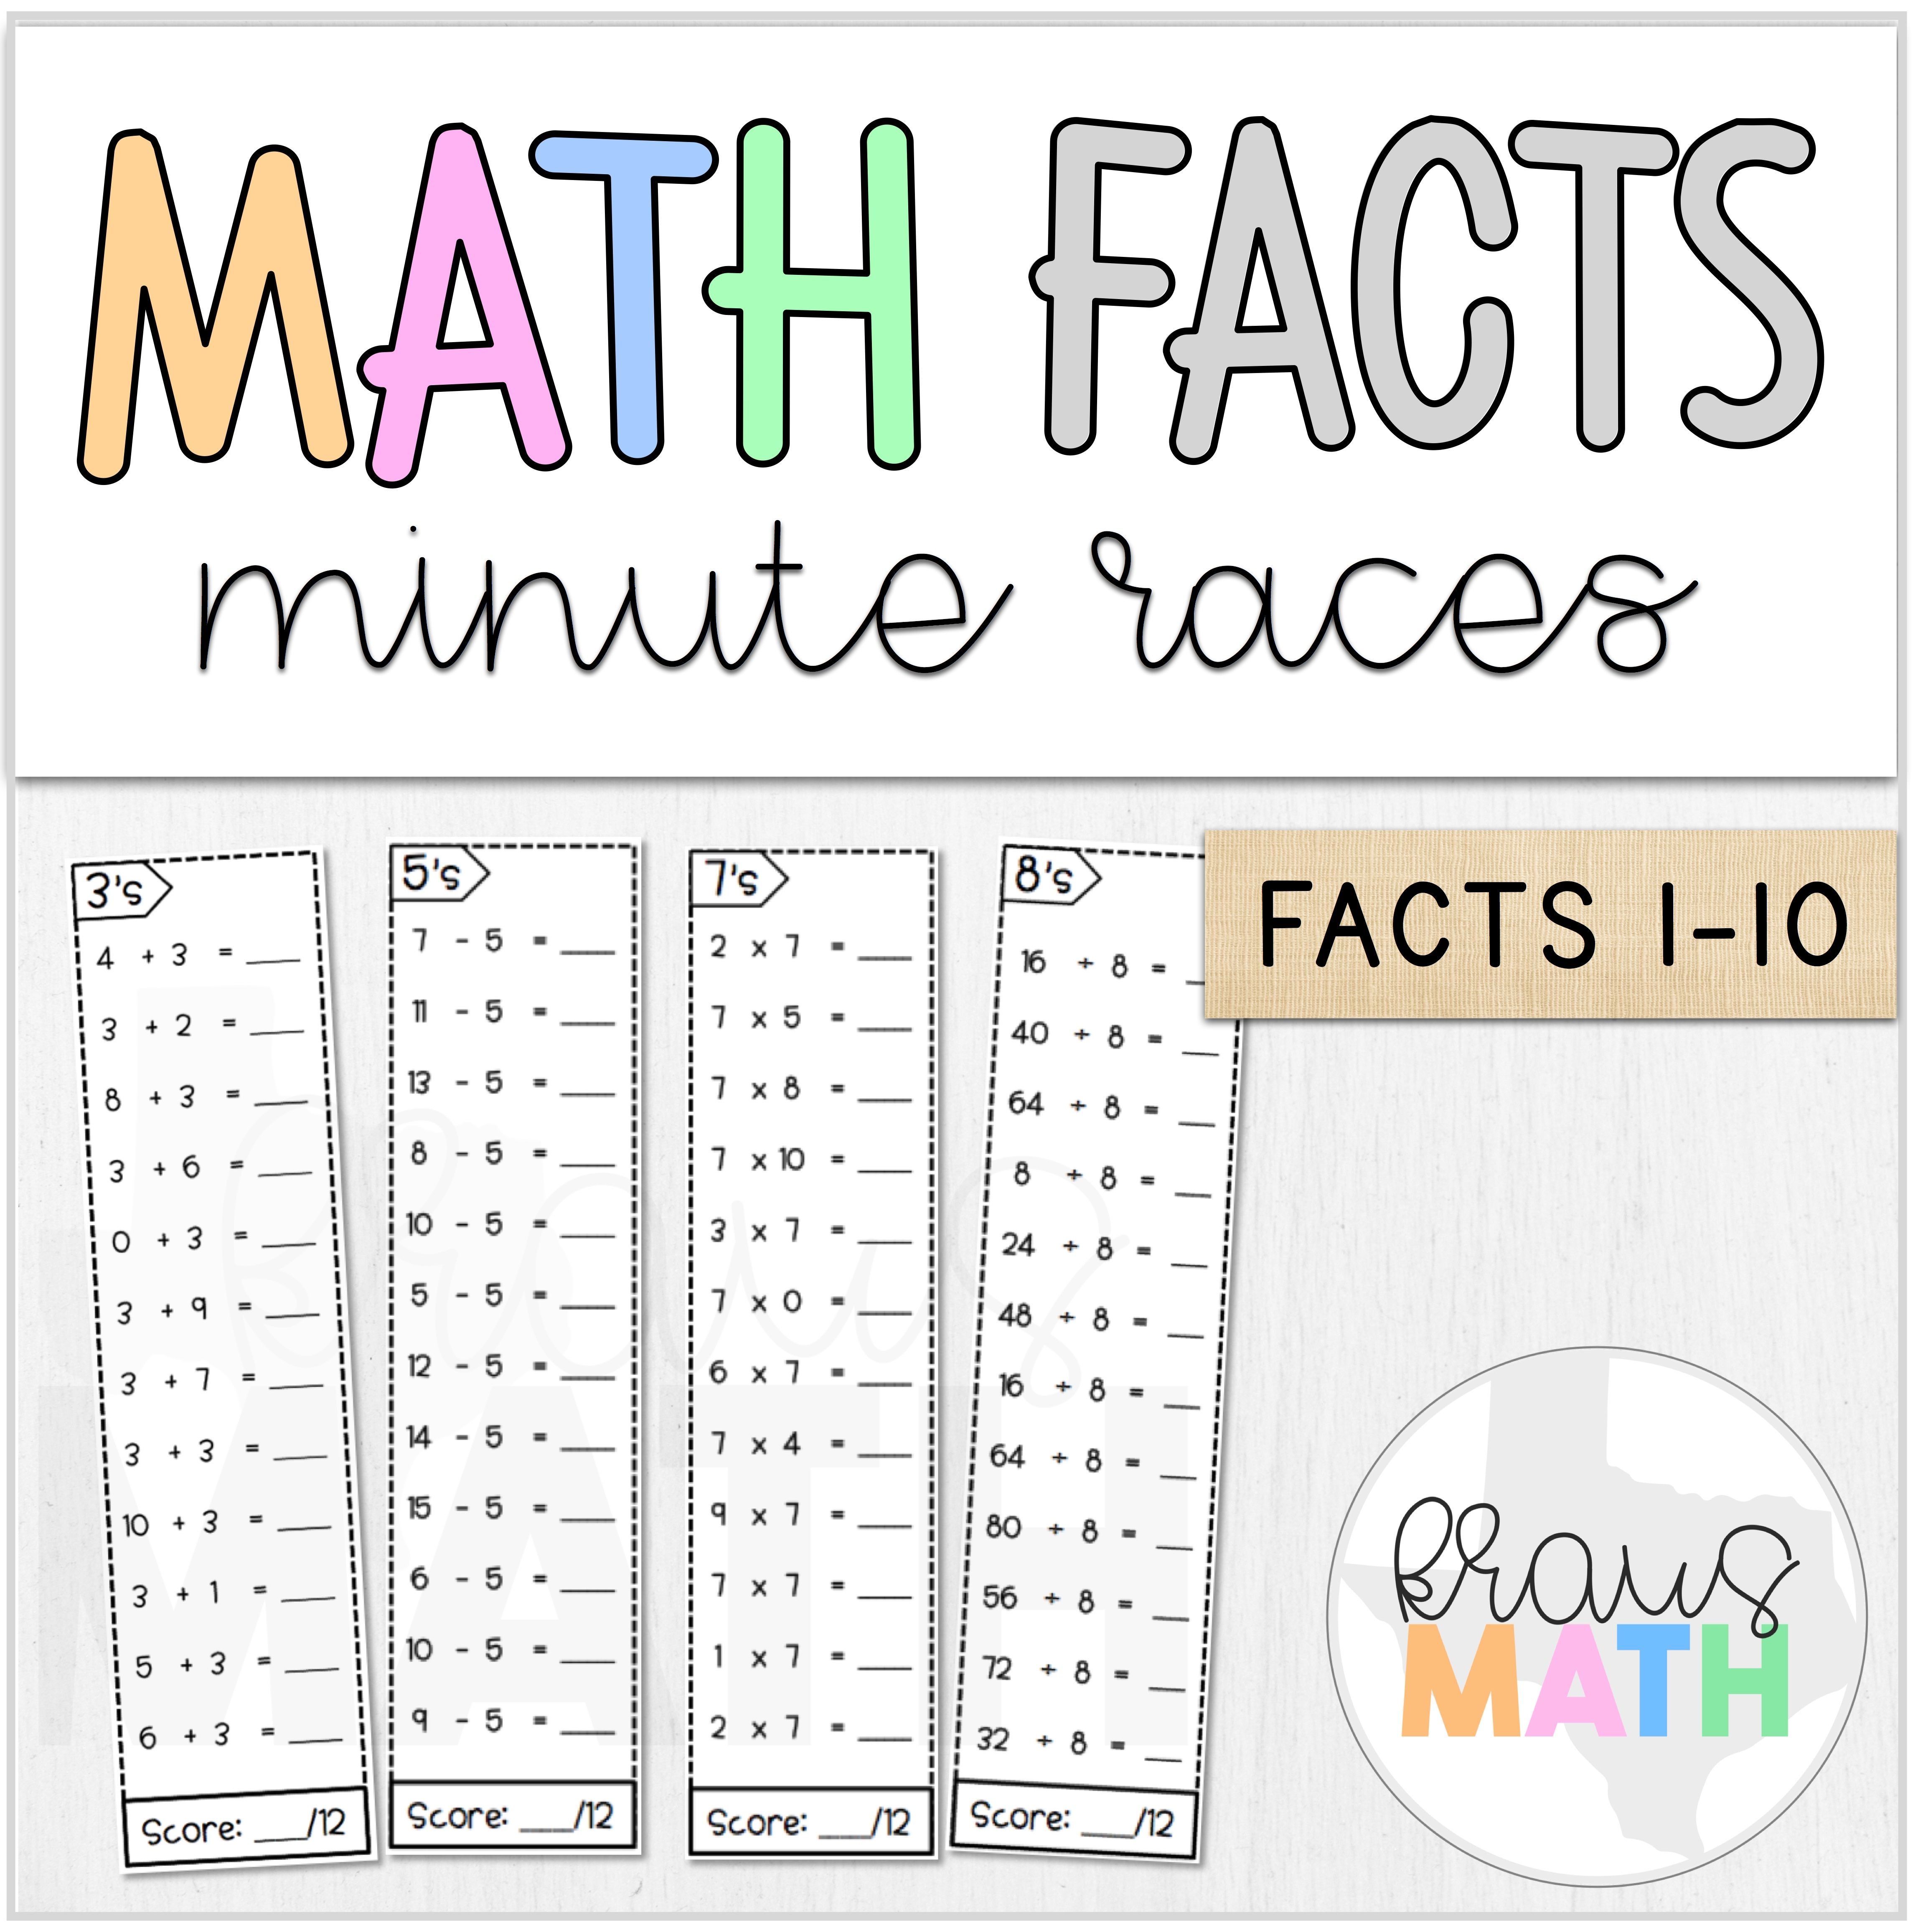 small resolution of Math Facts Fluency   Minute Races BUNDLE (0-10)   Kraus Math   Math facts